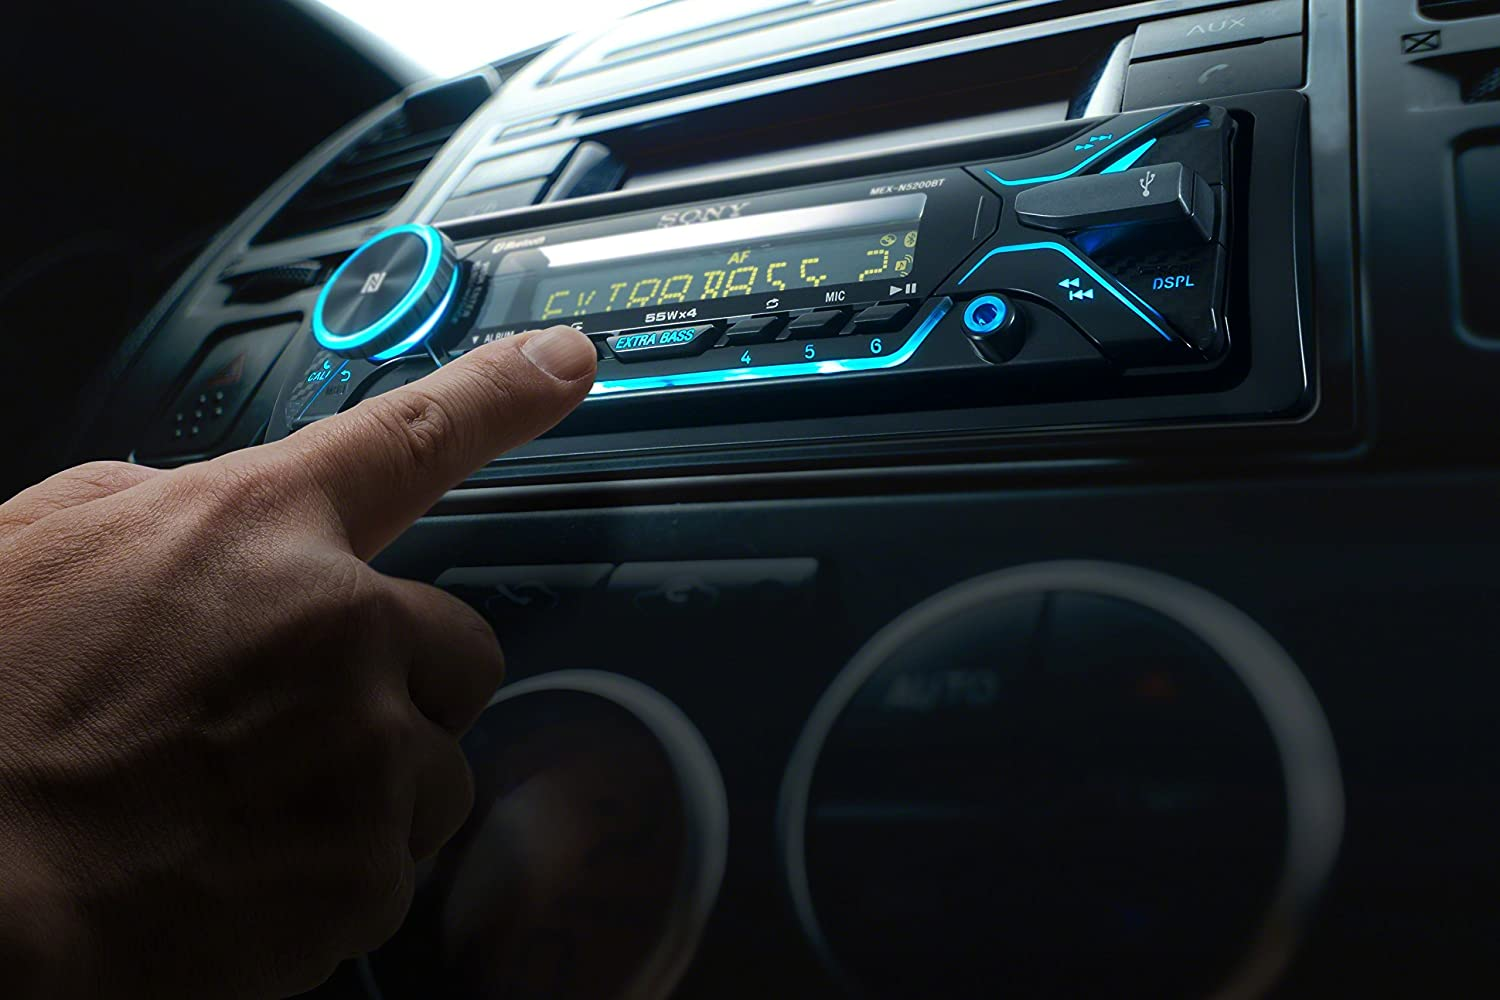 Sony MEX-N5200BT CD Receiver with Bluetooth external microphone and SiriusXM Ready Disco by manufacturer